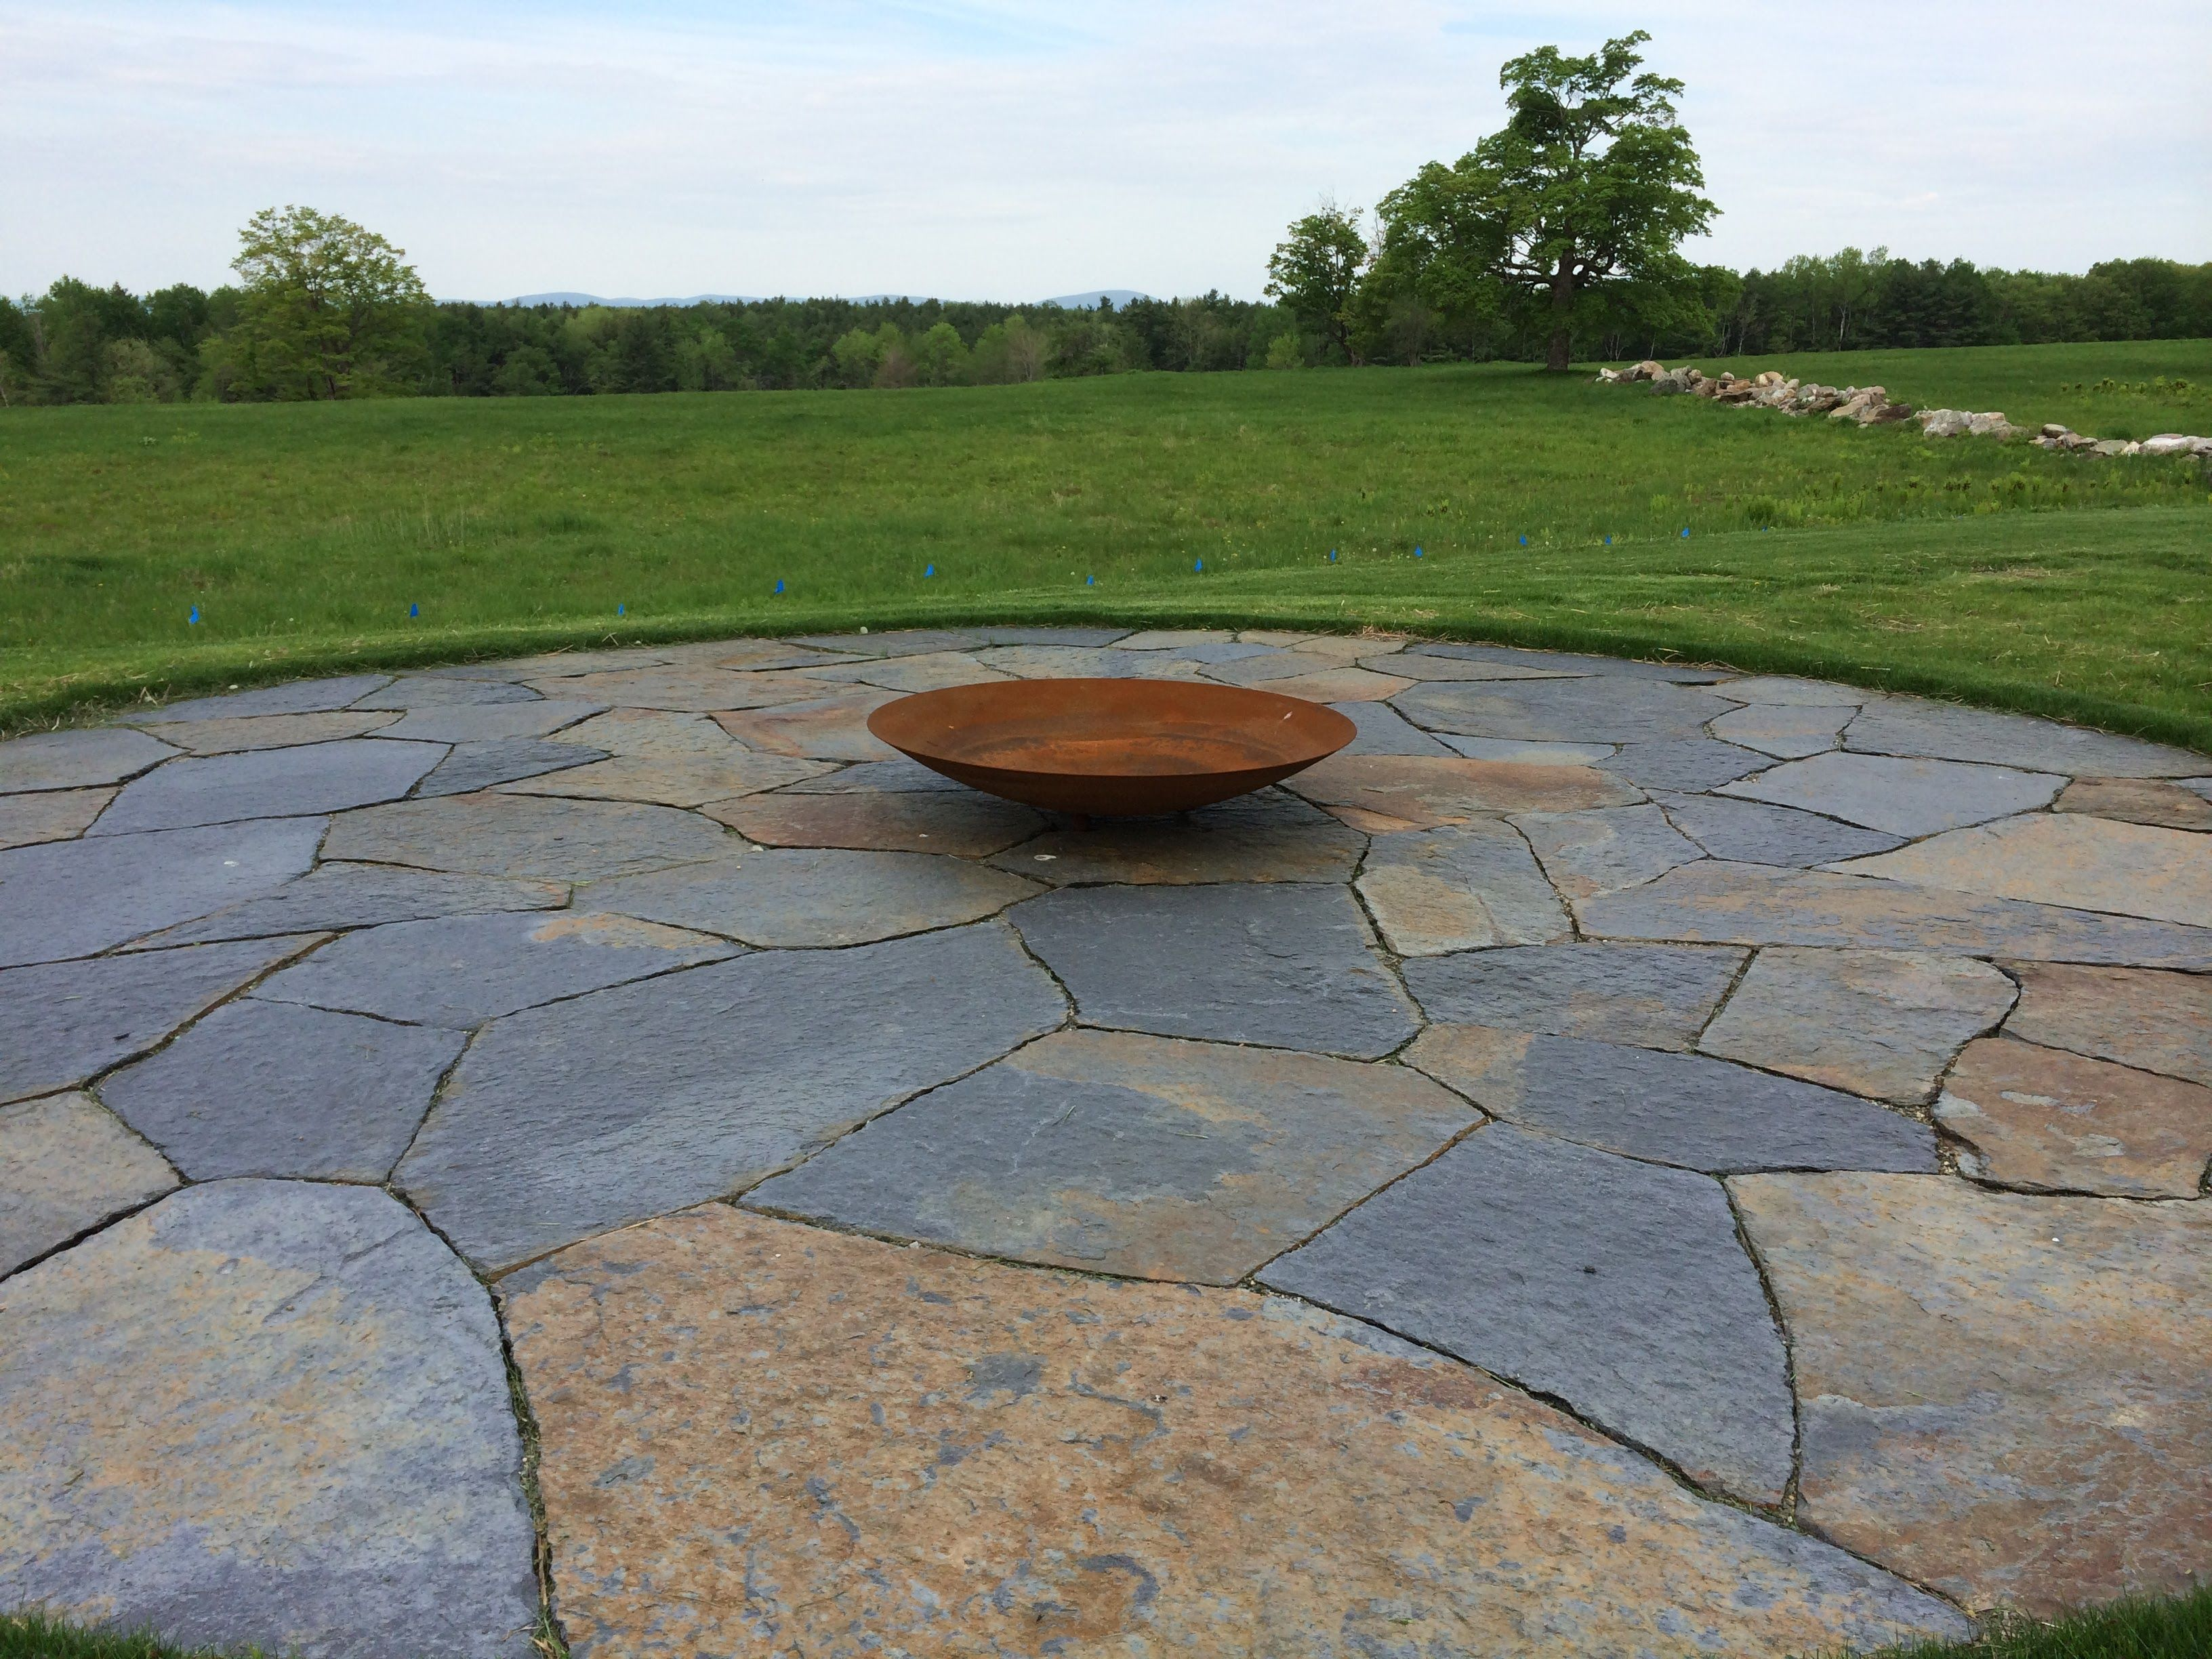 fire pit with 30 perfect circle of irregular goshen stone paving